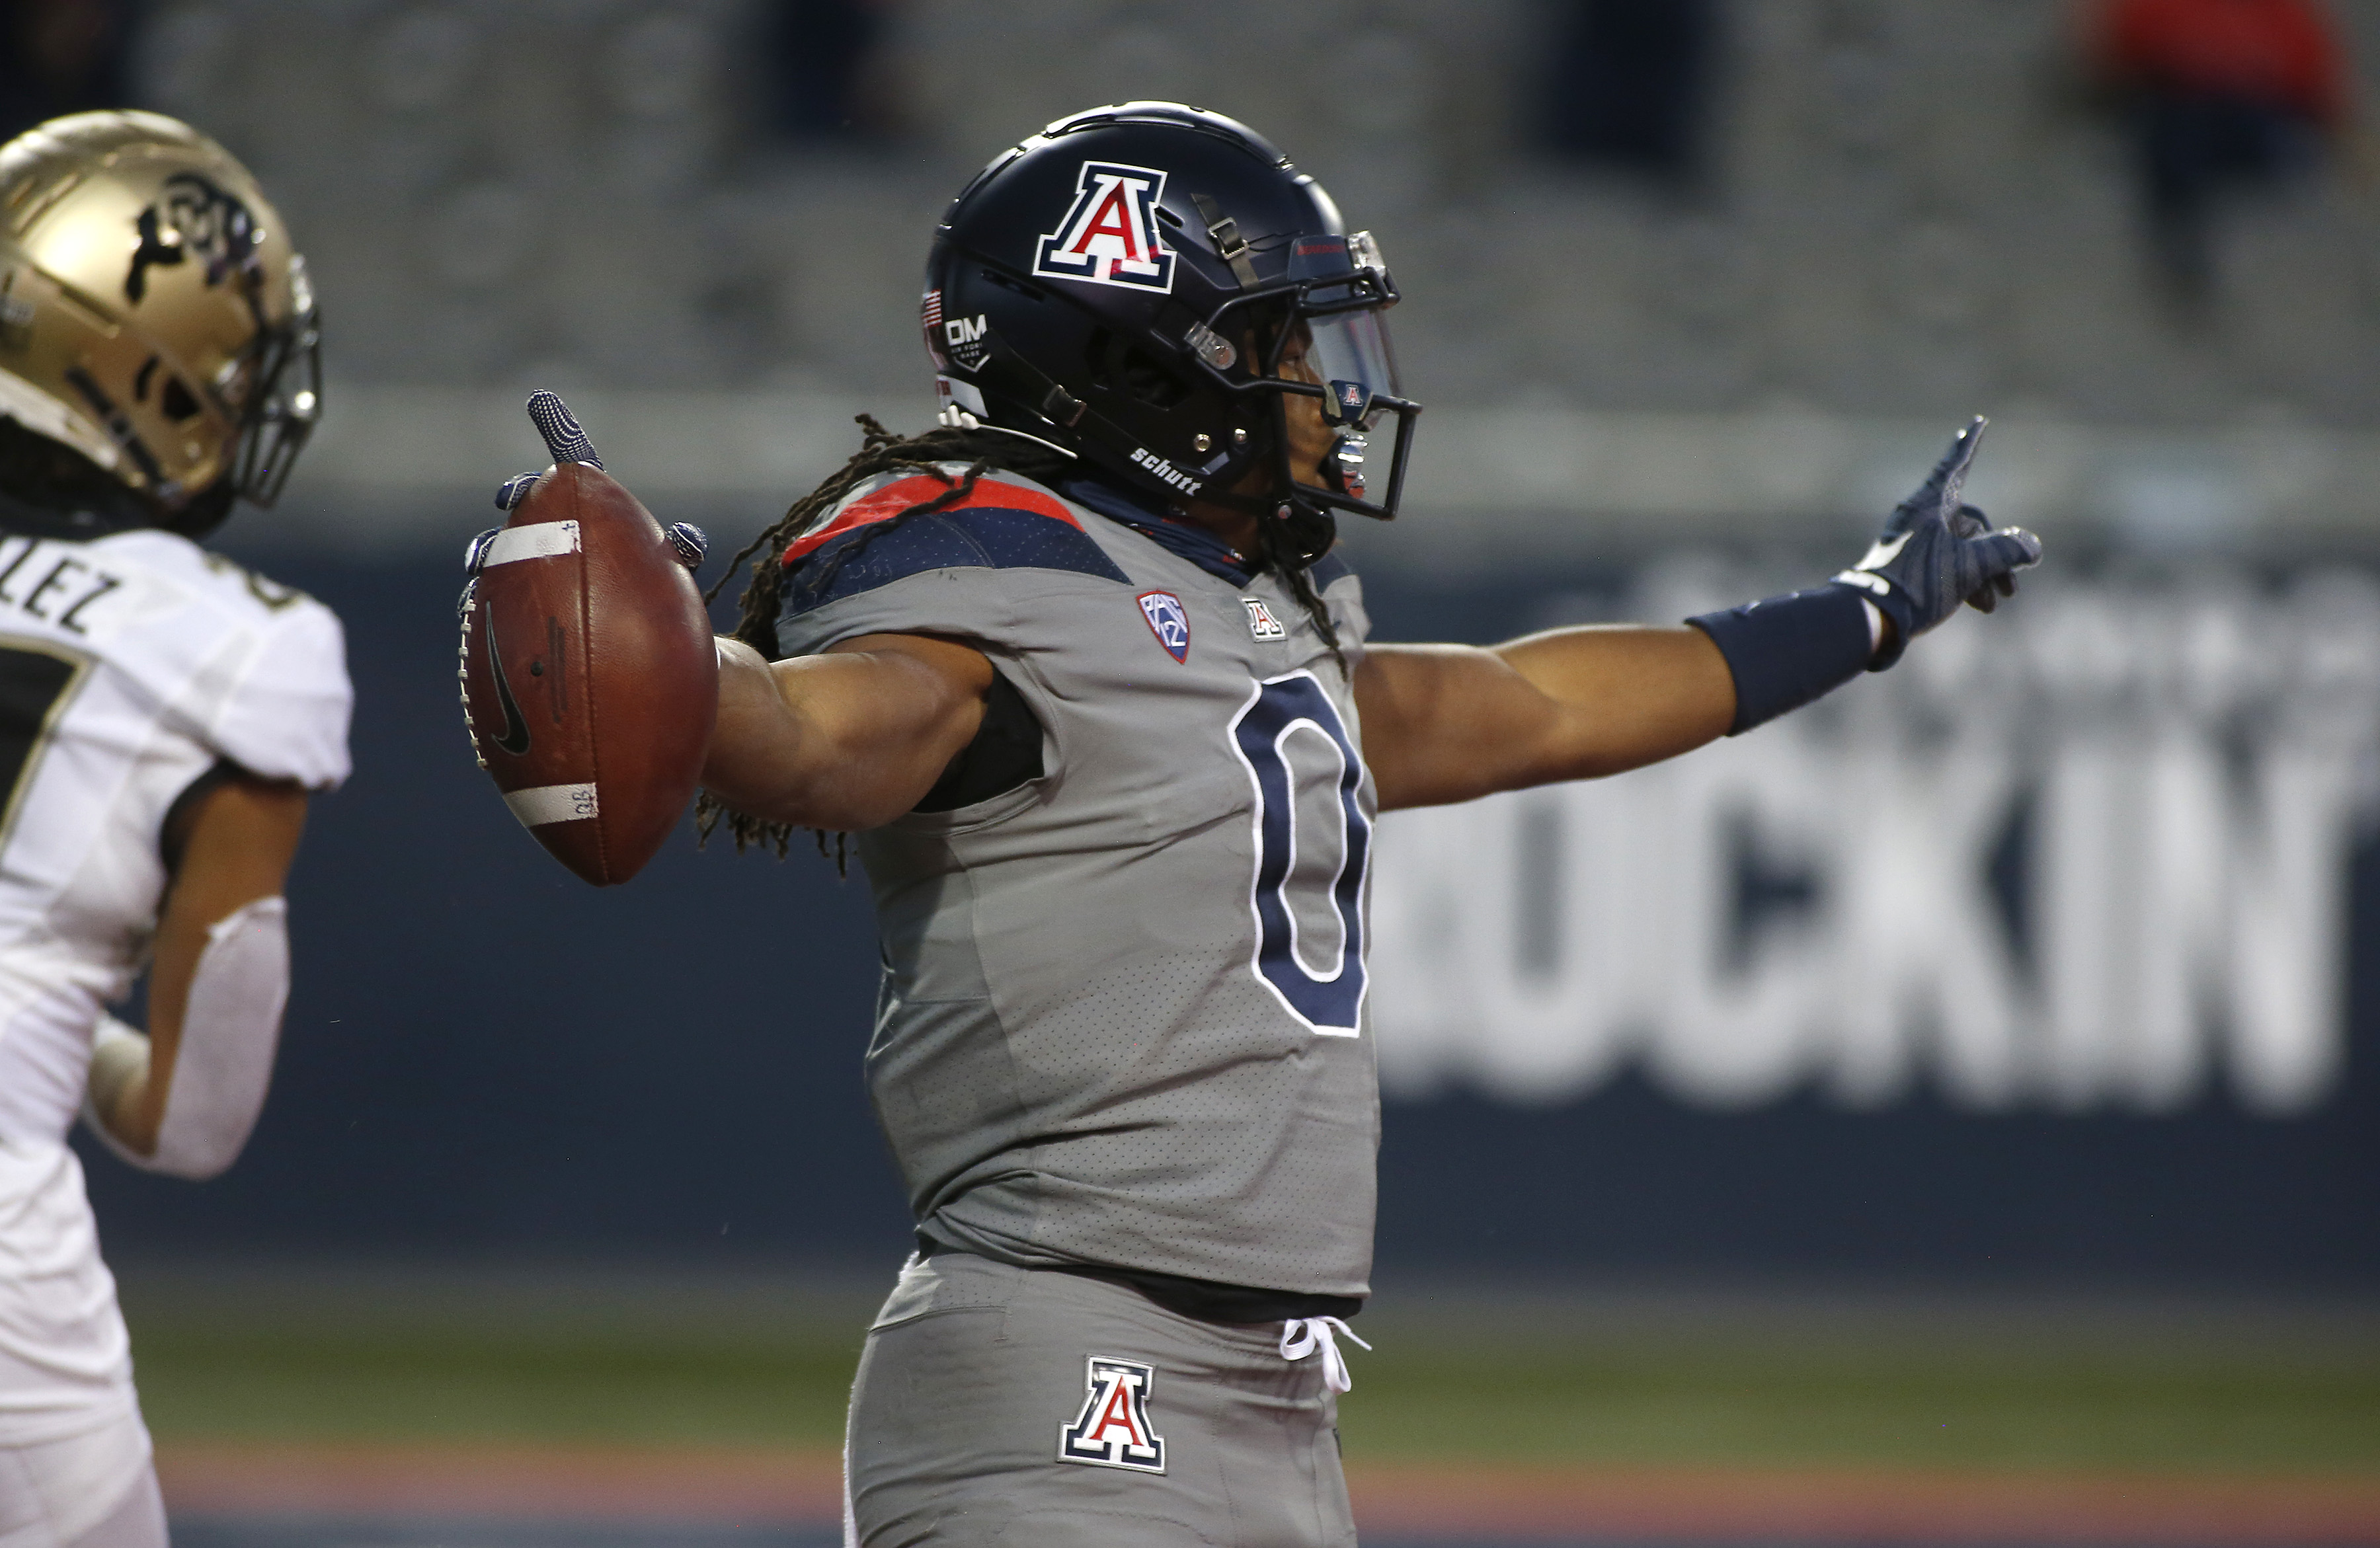 Running back Gary Brightwell #0 of the Arizona Wildcats celebrates after scoring a touchdown against the Colorado Buffaloes during the first half of the PAC-12 football game at Arizona Stadium on December 05, 2020 in Tucson, Arizona.